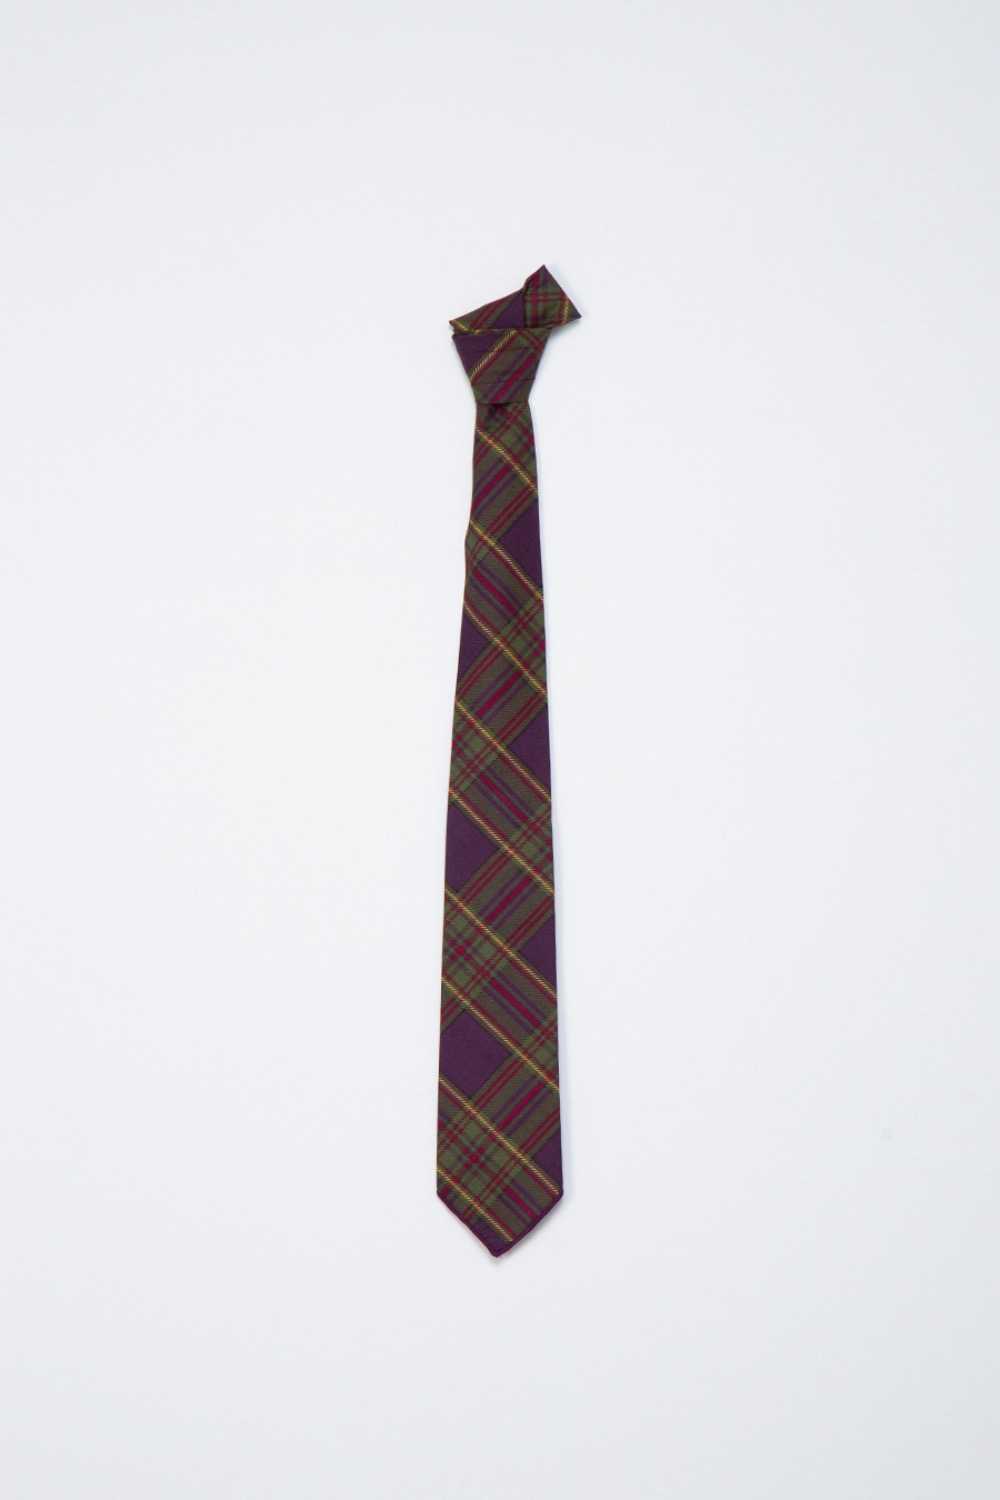 NECK TIE PURPLE GREEN COTTON PRINTED PLAID